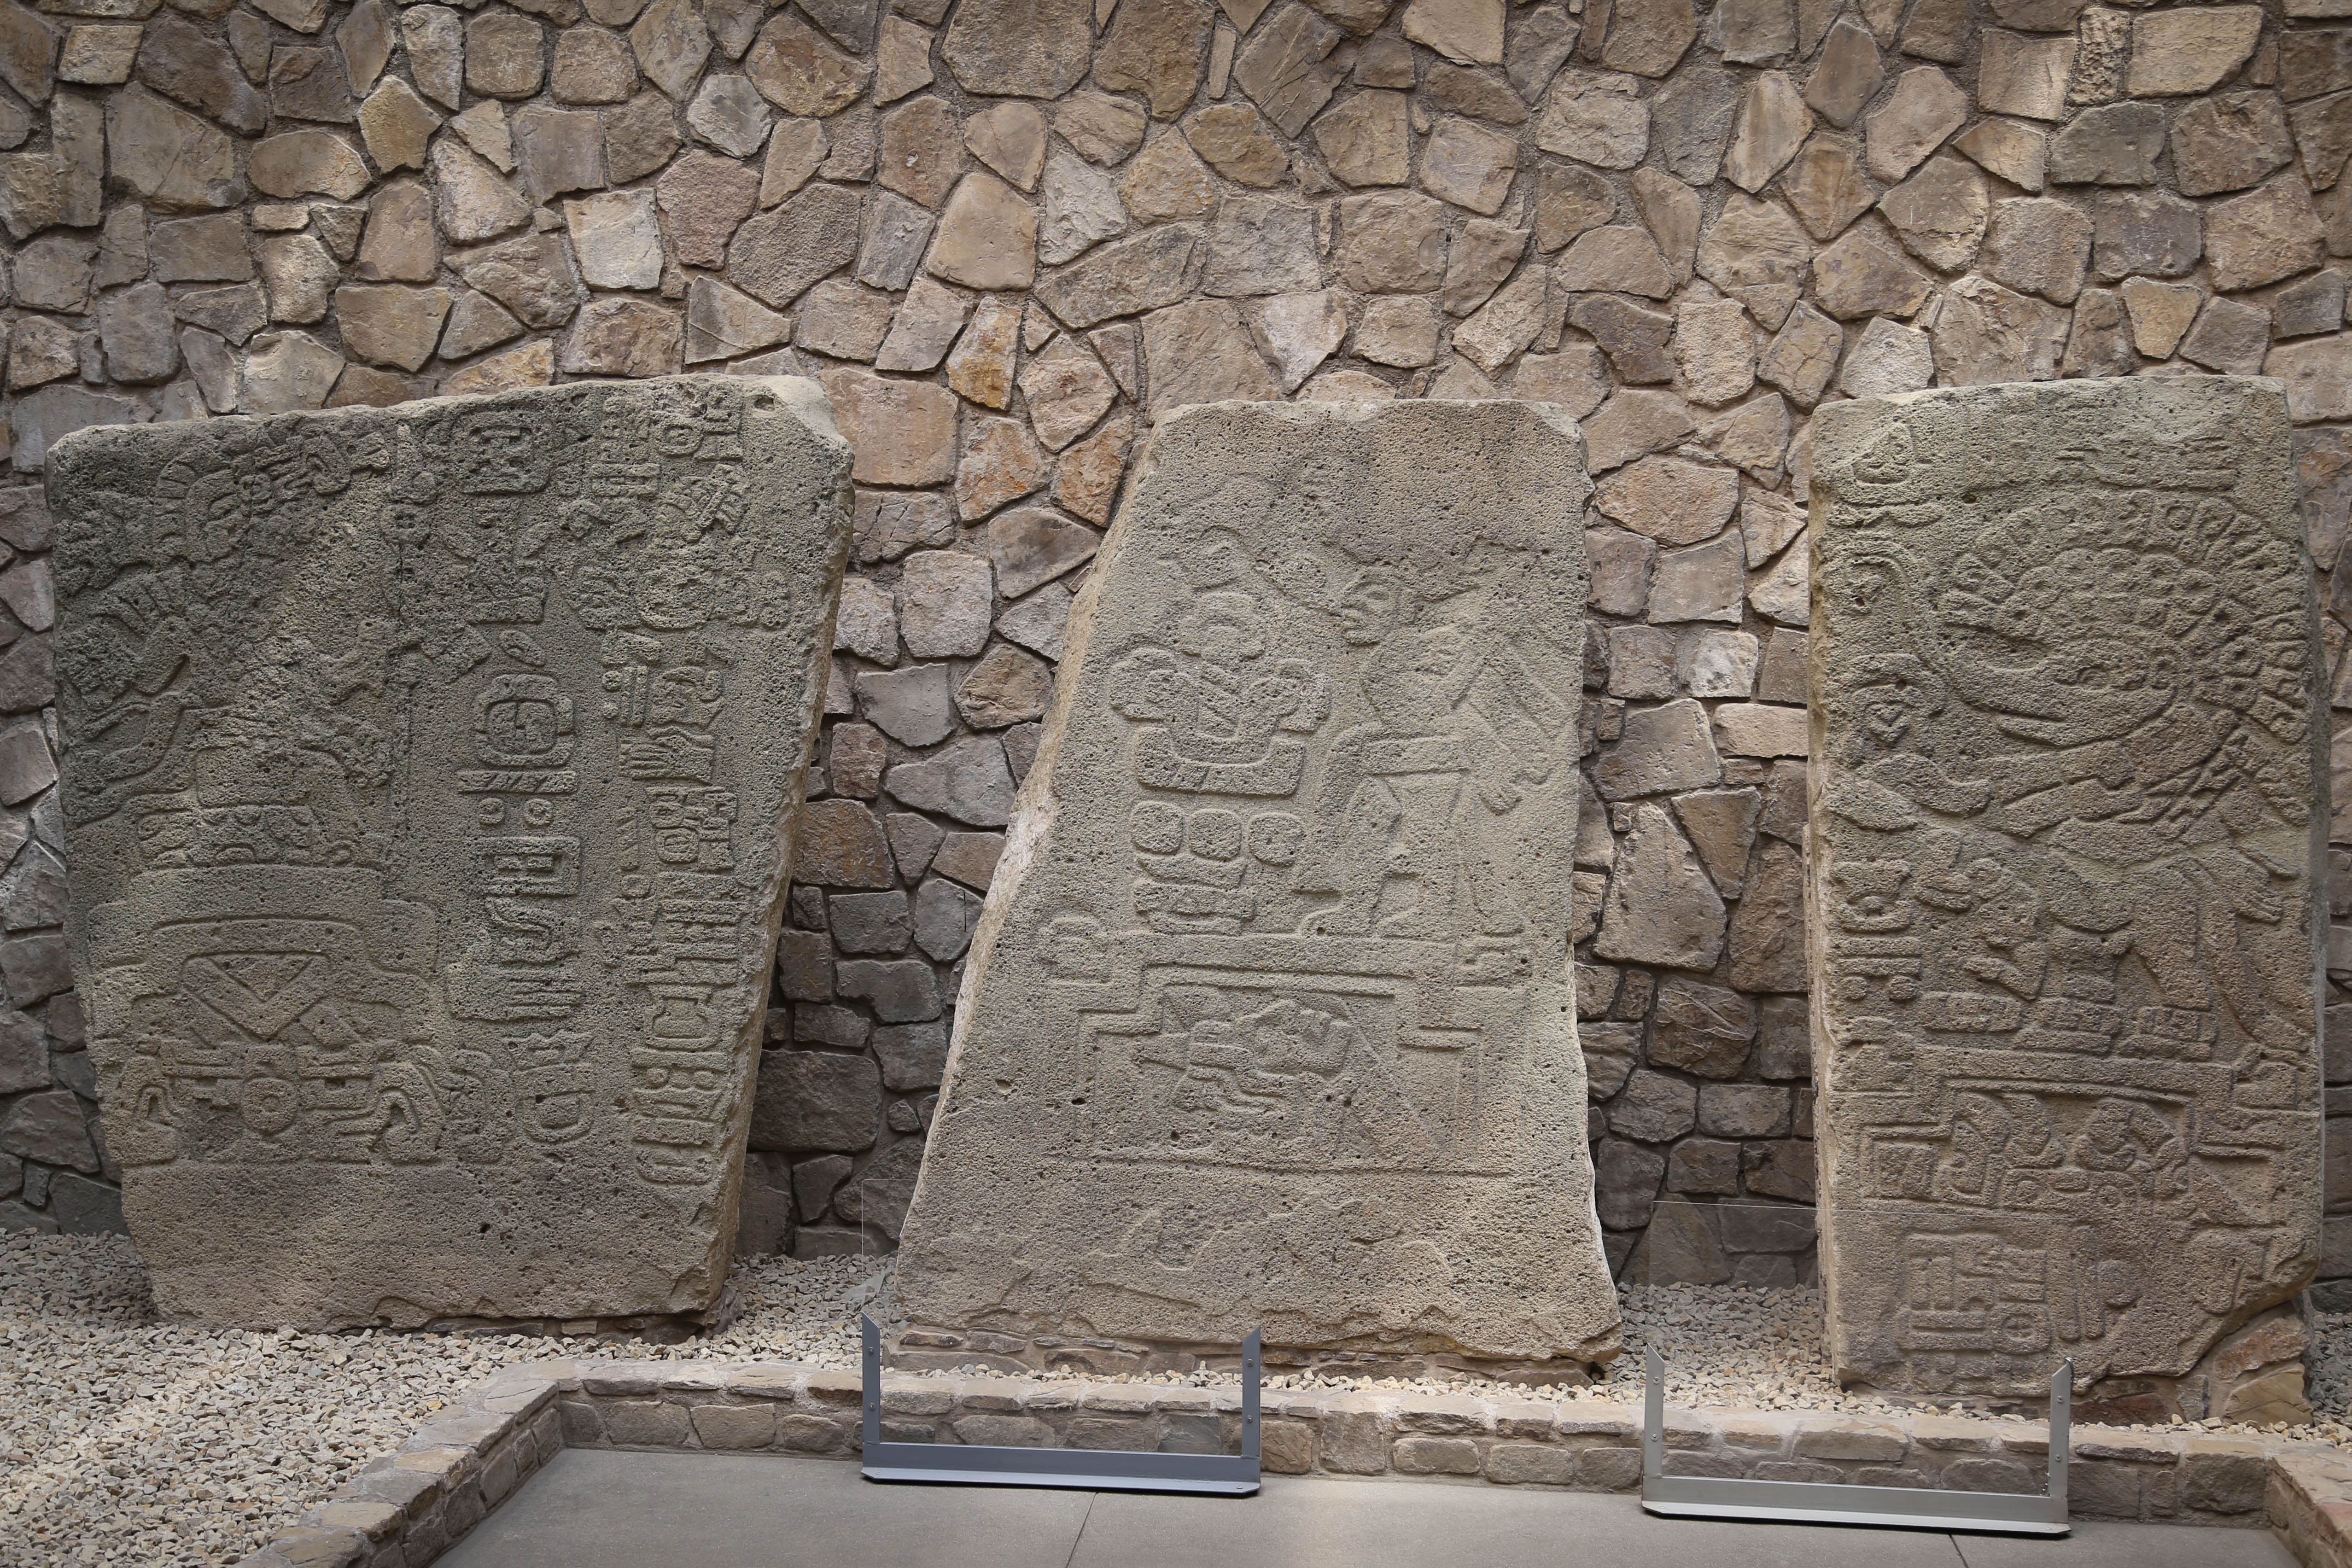 Archaeologists unearthed a large number of carved stones, like these at the visitor center.